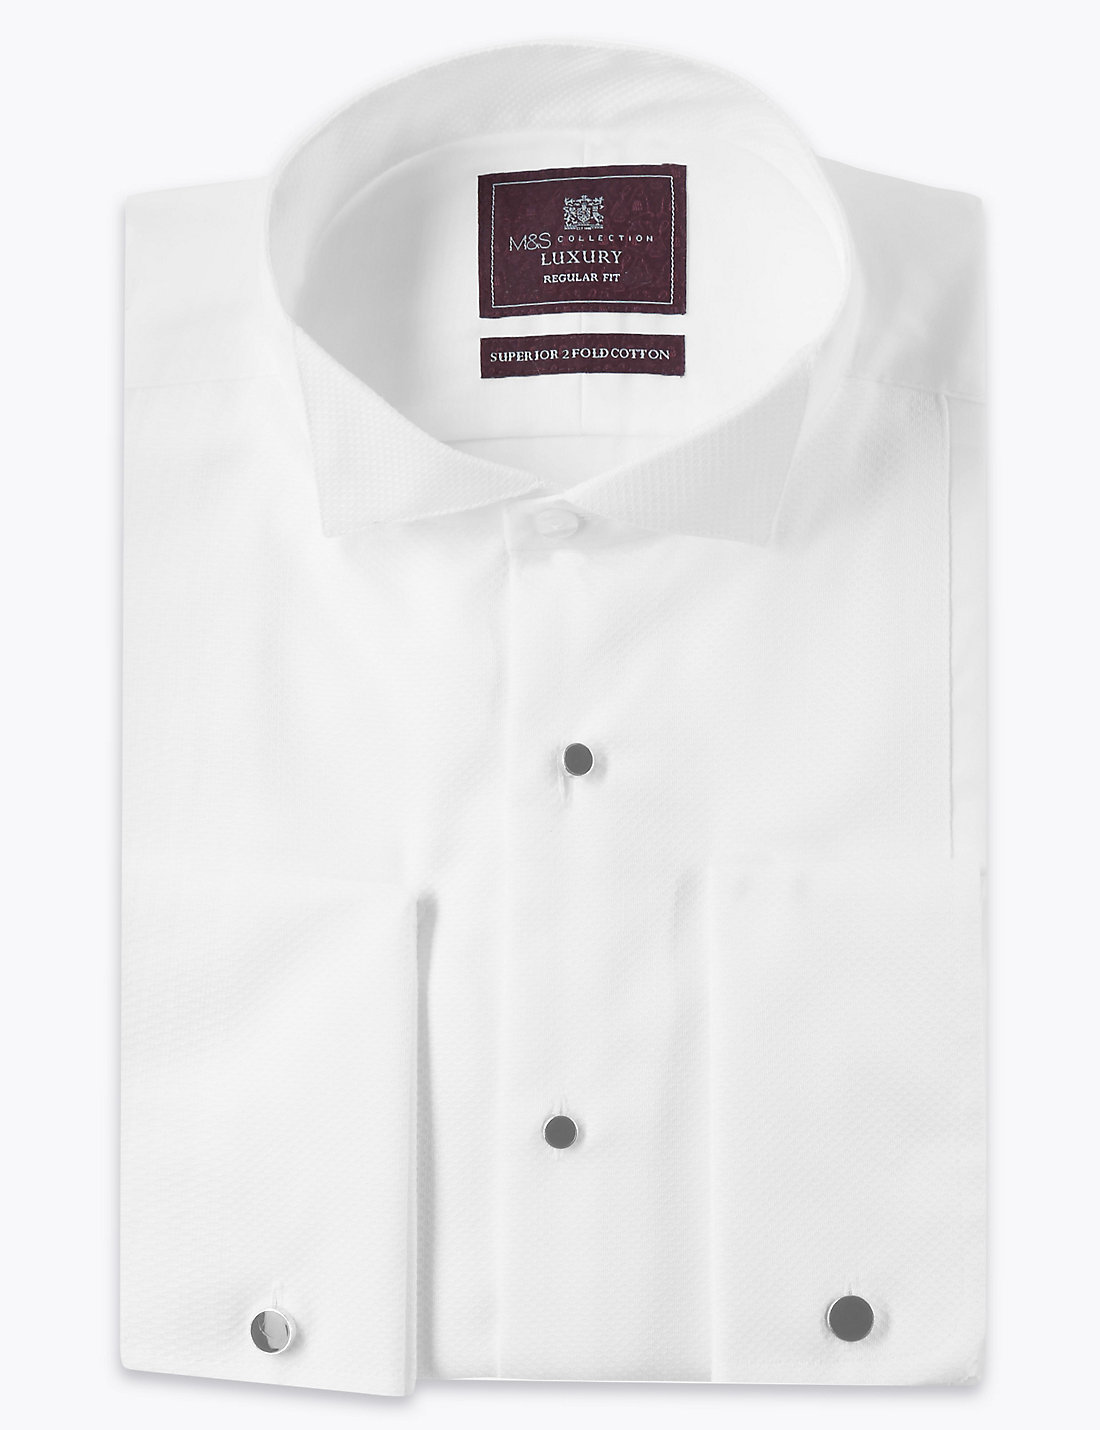 Mens Dress Shirts | Dinner Shirts For Men | M&S